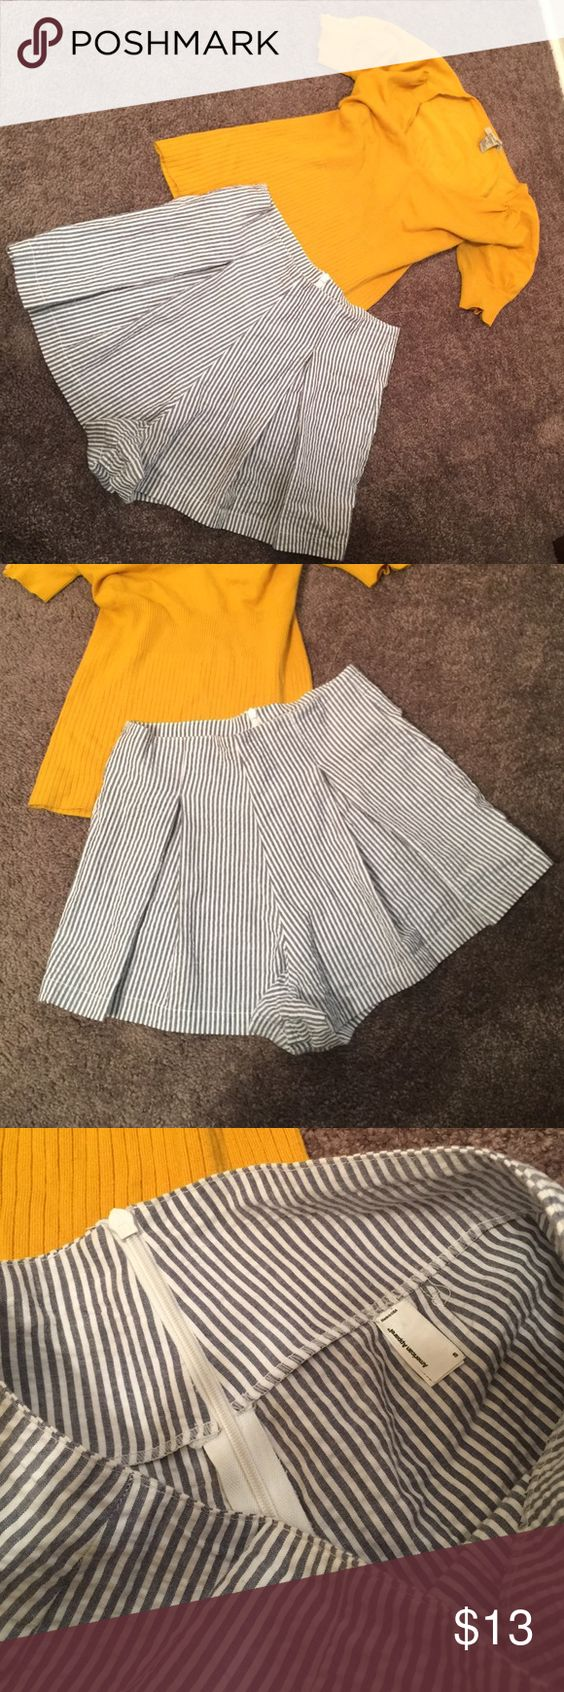 American Apparrel Flare Shorts Blue stripes. Great Condition Size Small American Apparel Shorts